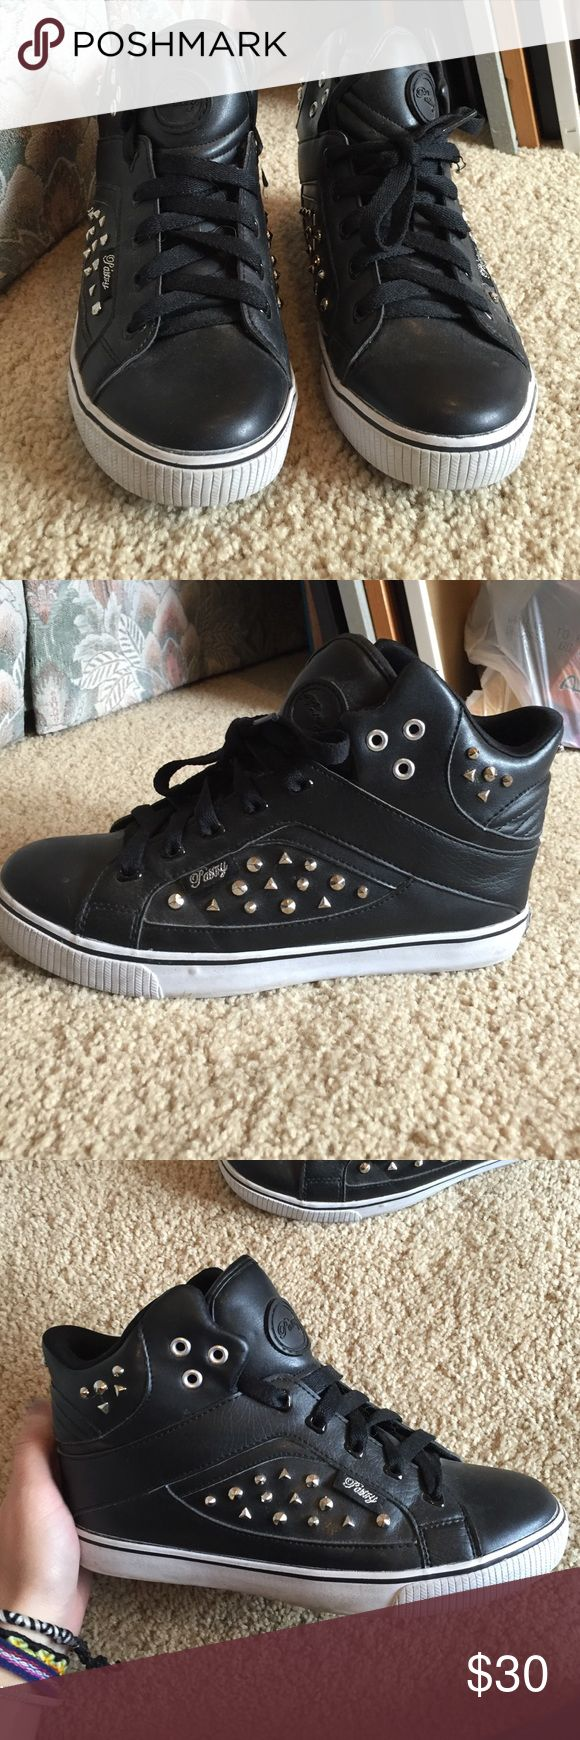 Studded Sneakers Never worn, studded sneakers, size 7 pastry Shoes Sneakers